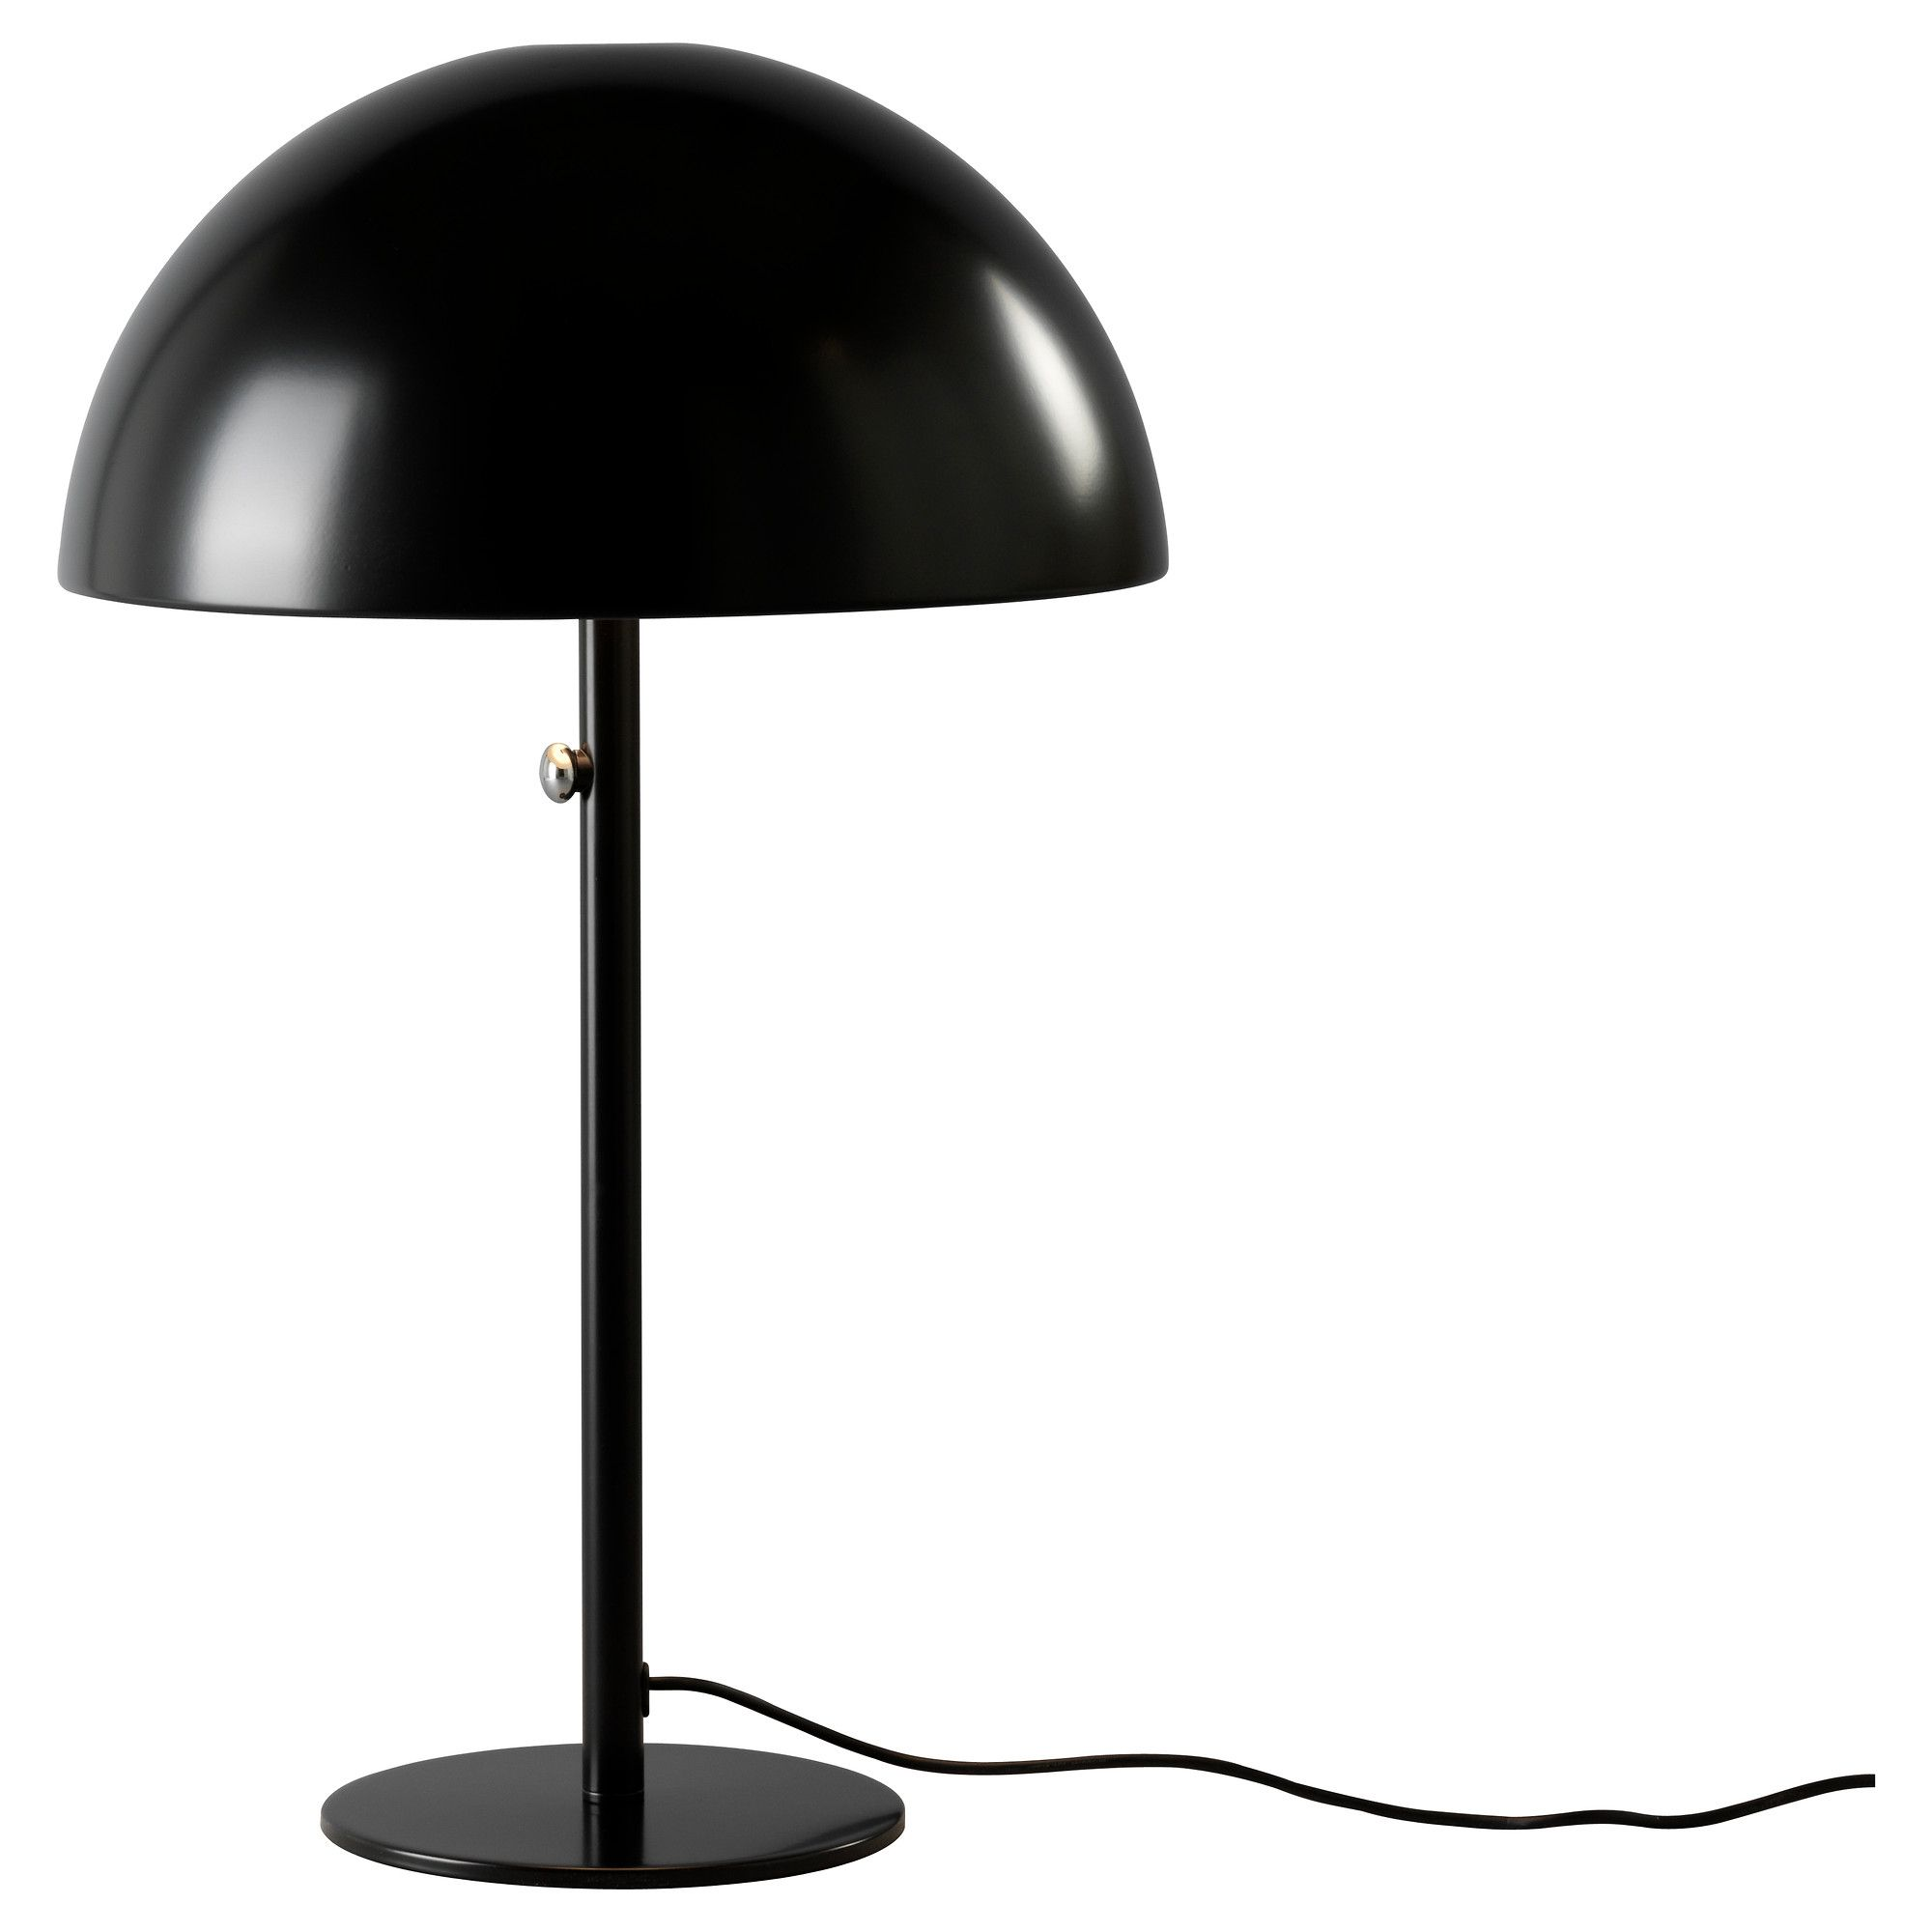 ikea lighting usa. explore ikea table lamps and more lighting usa